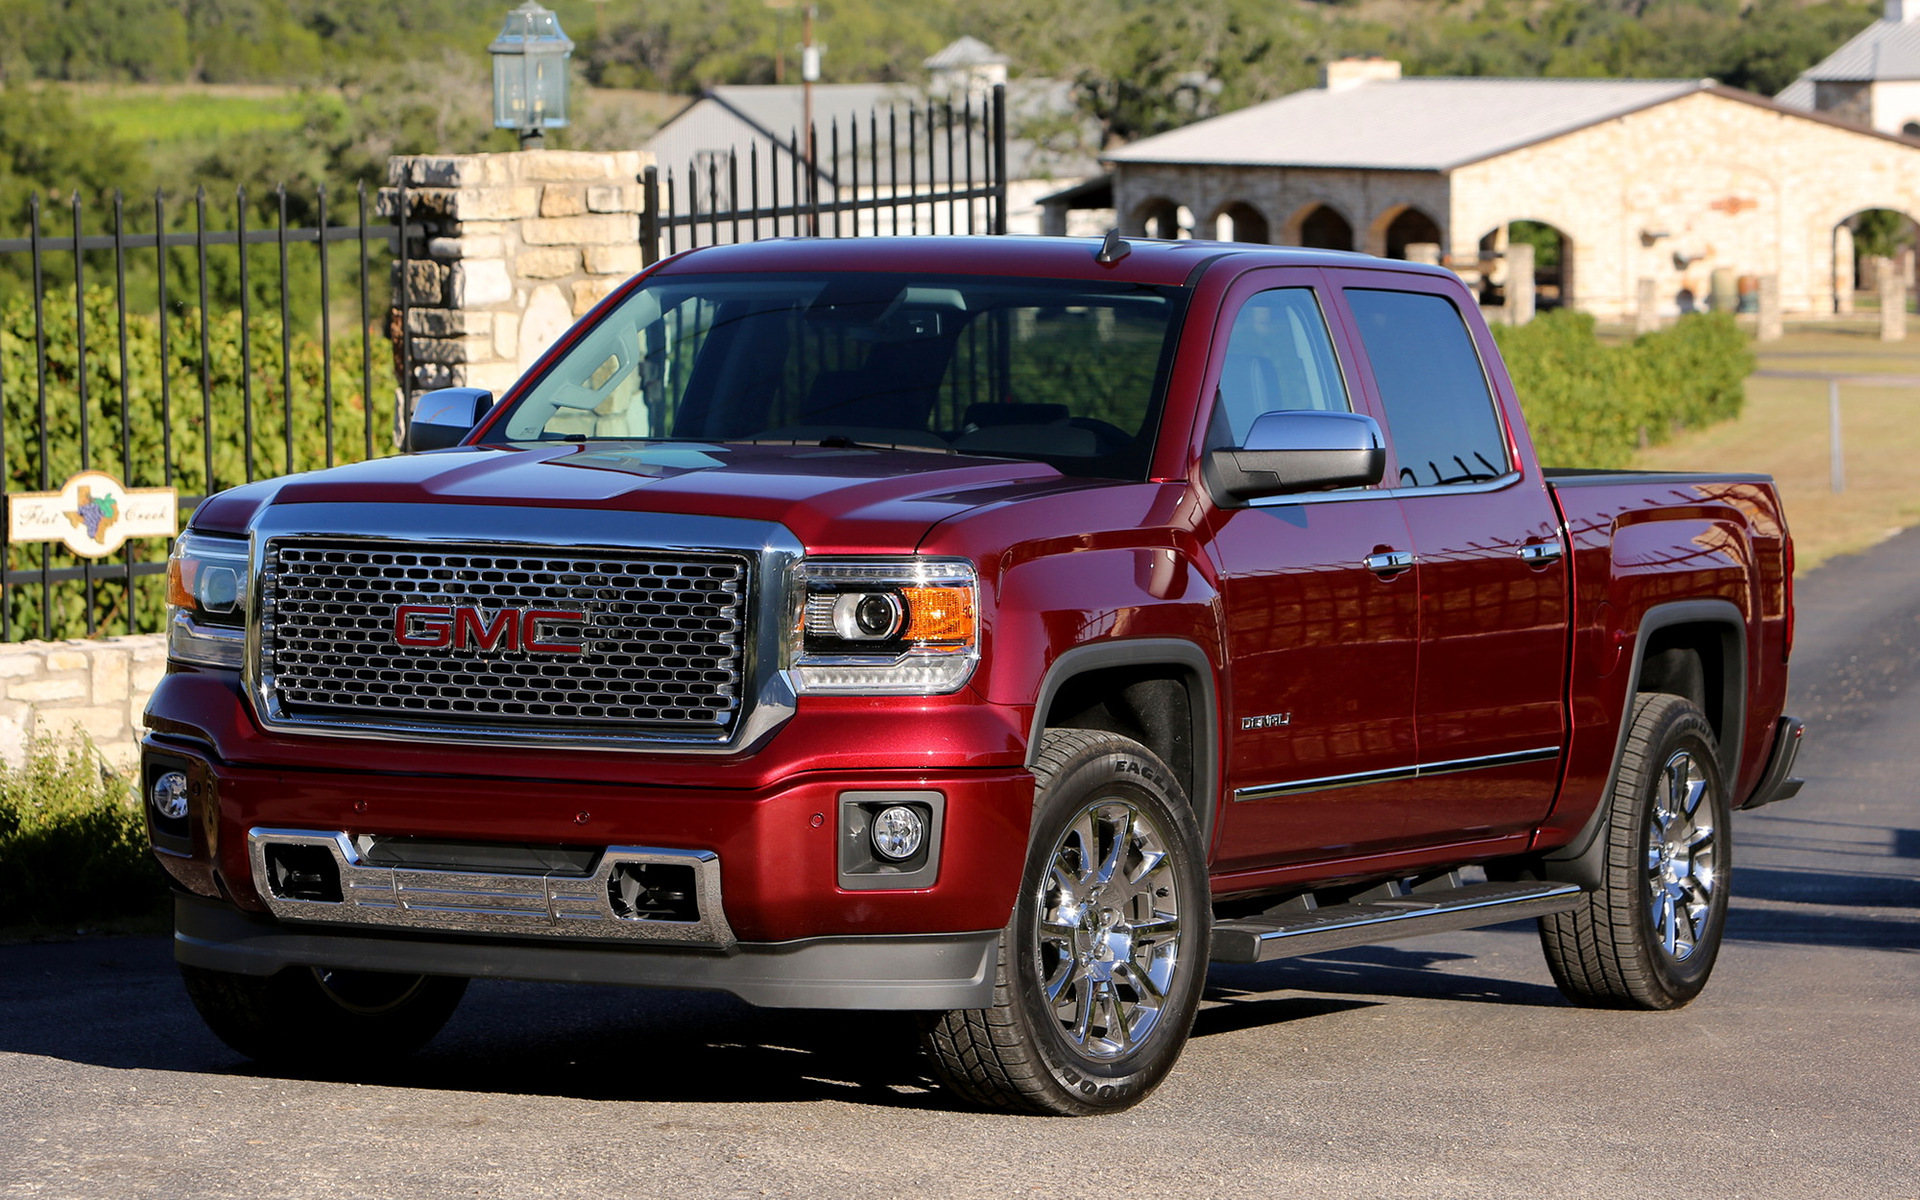 2015 Gmc Sierra Denali >> 2014 GMC Sierra Denali 1500 Crew Cab - Wallpapers and HD Images | Car Pixel